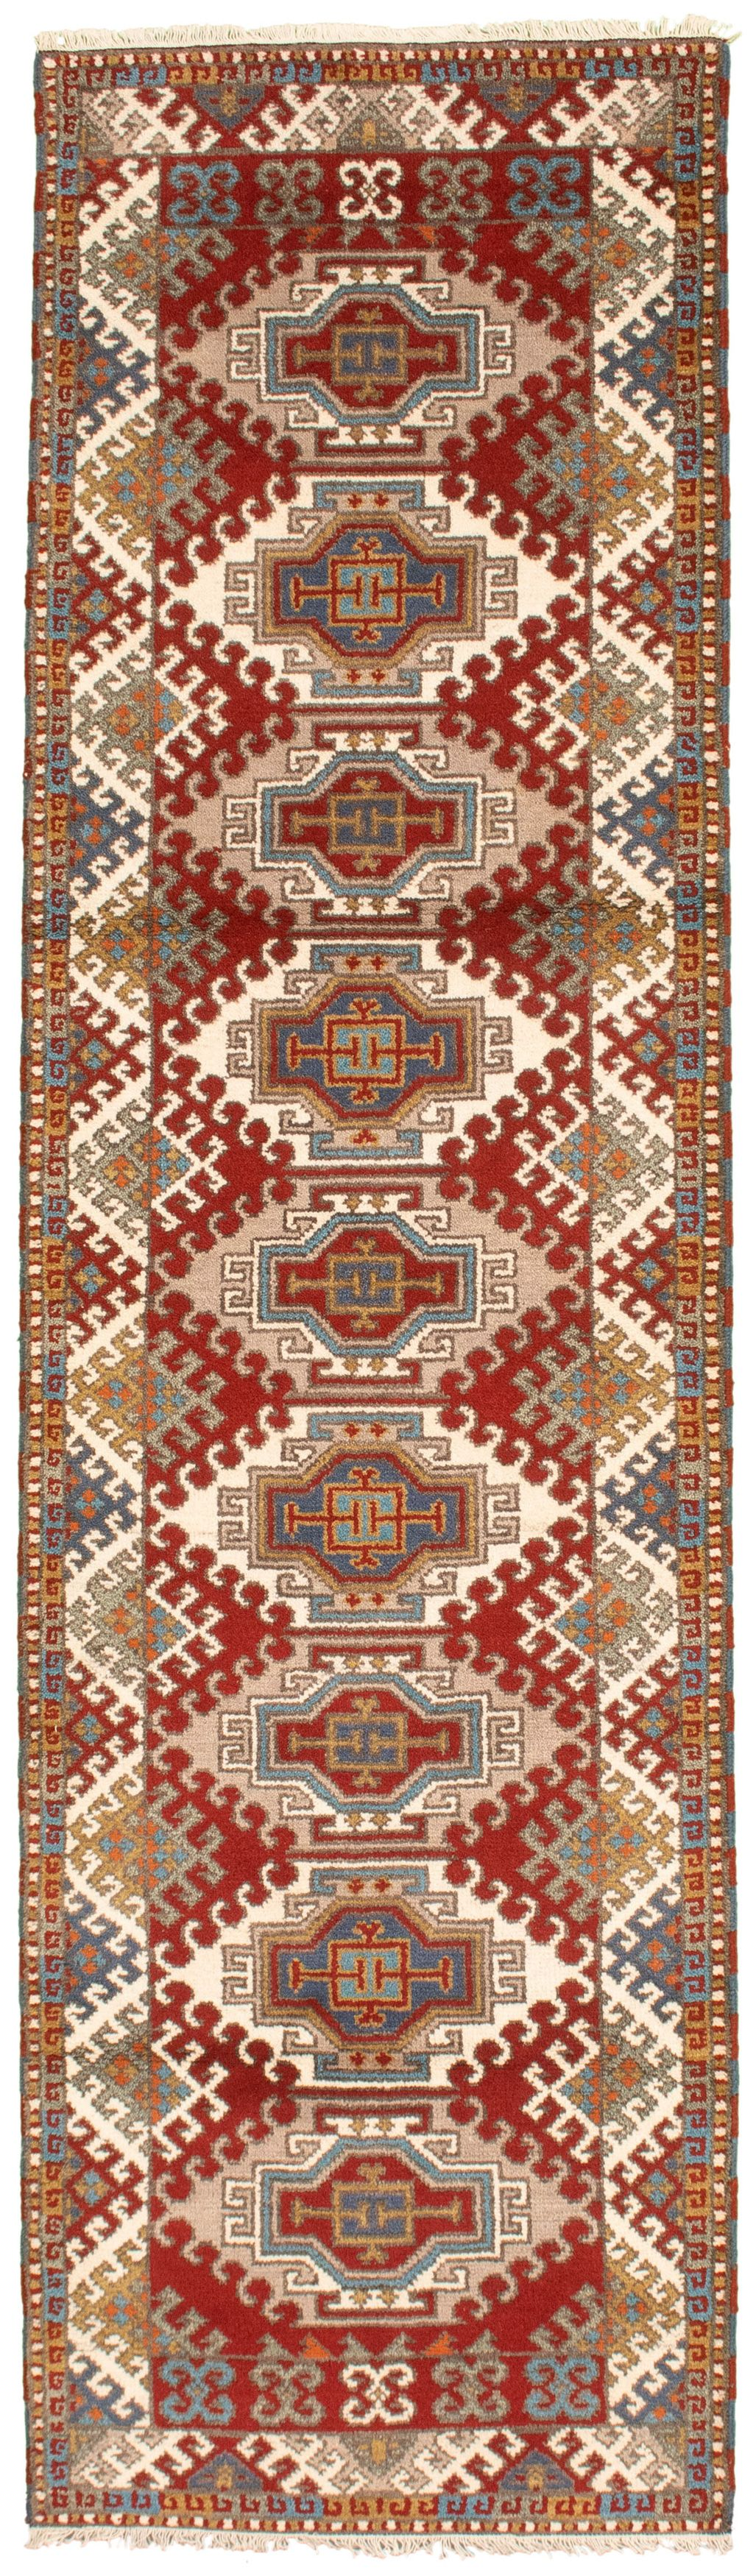 "Hand-knotted Royal Kazak Red Wool Rug 2'9"" x 10'0""  Size: 2'9"" x 10'0"""